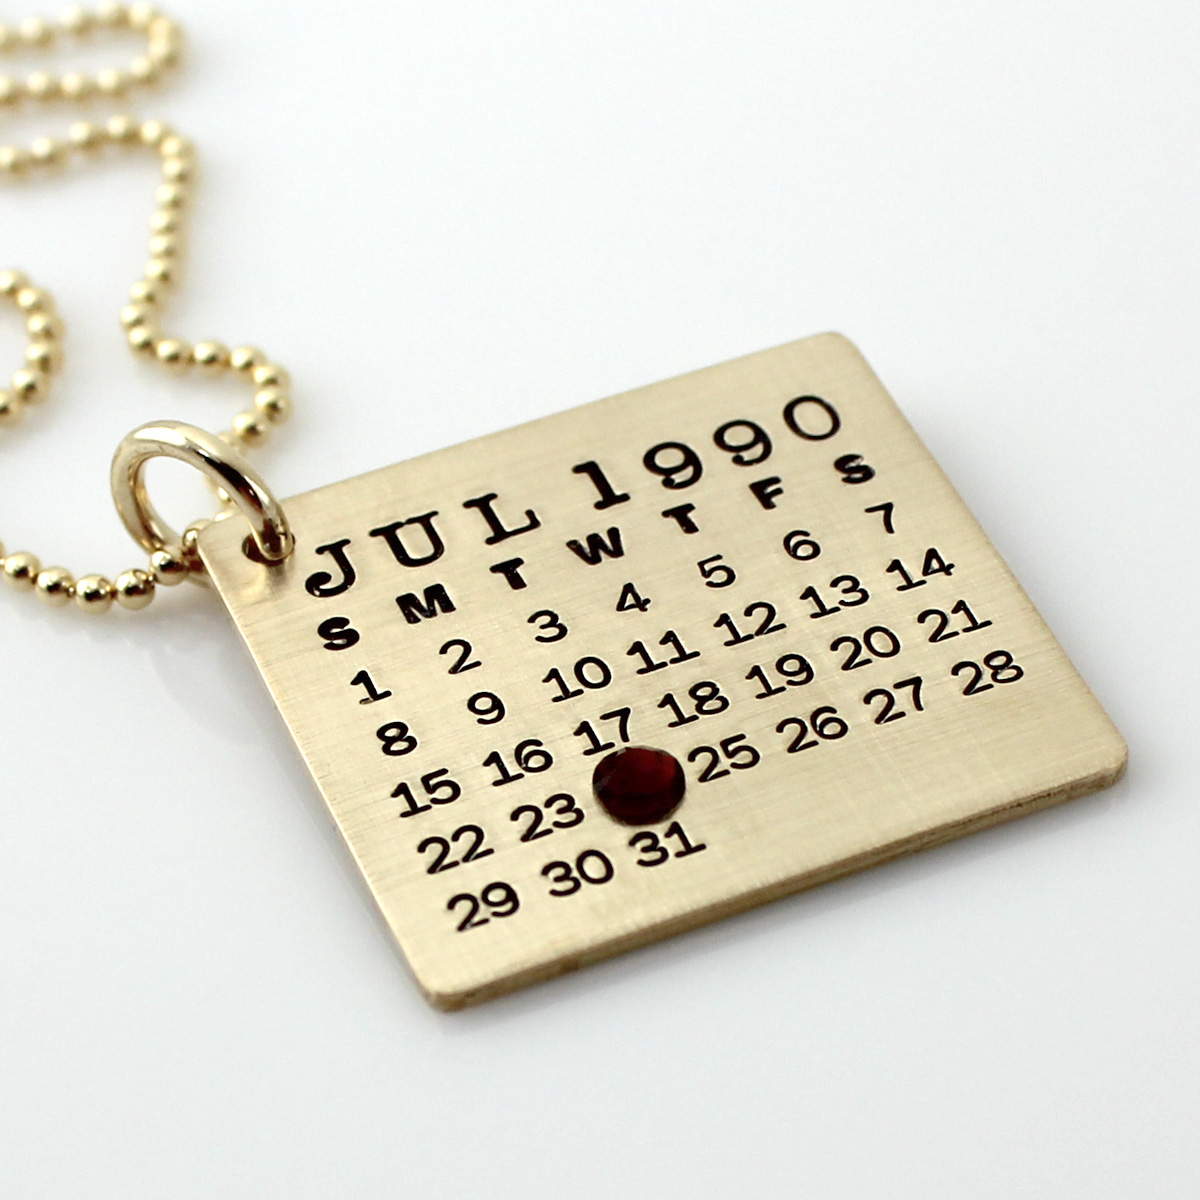 Mark Your Calendar Necklace - Gold Filled